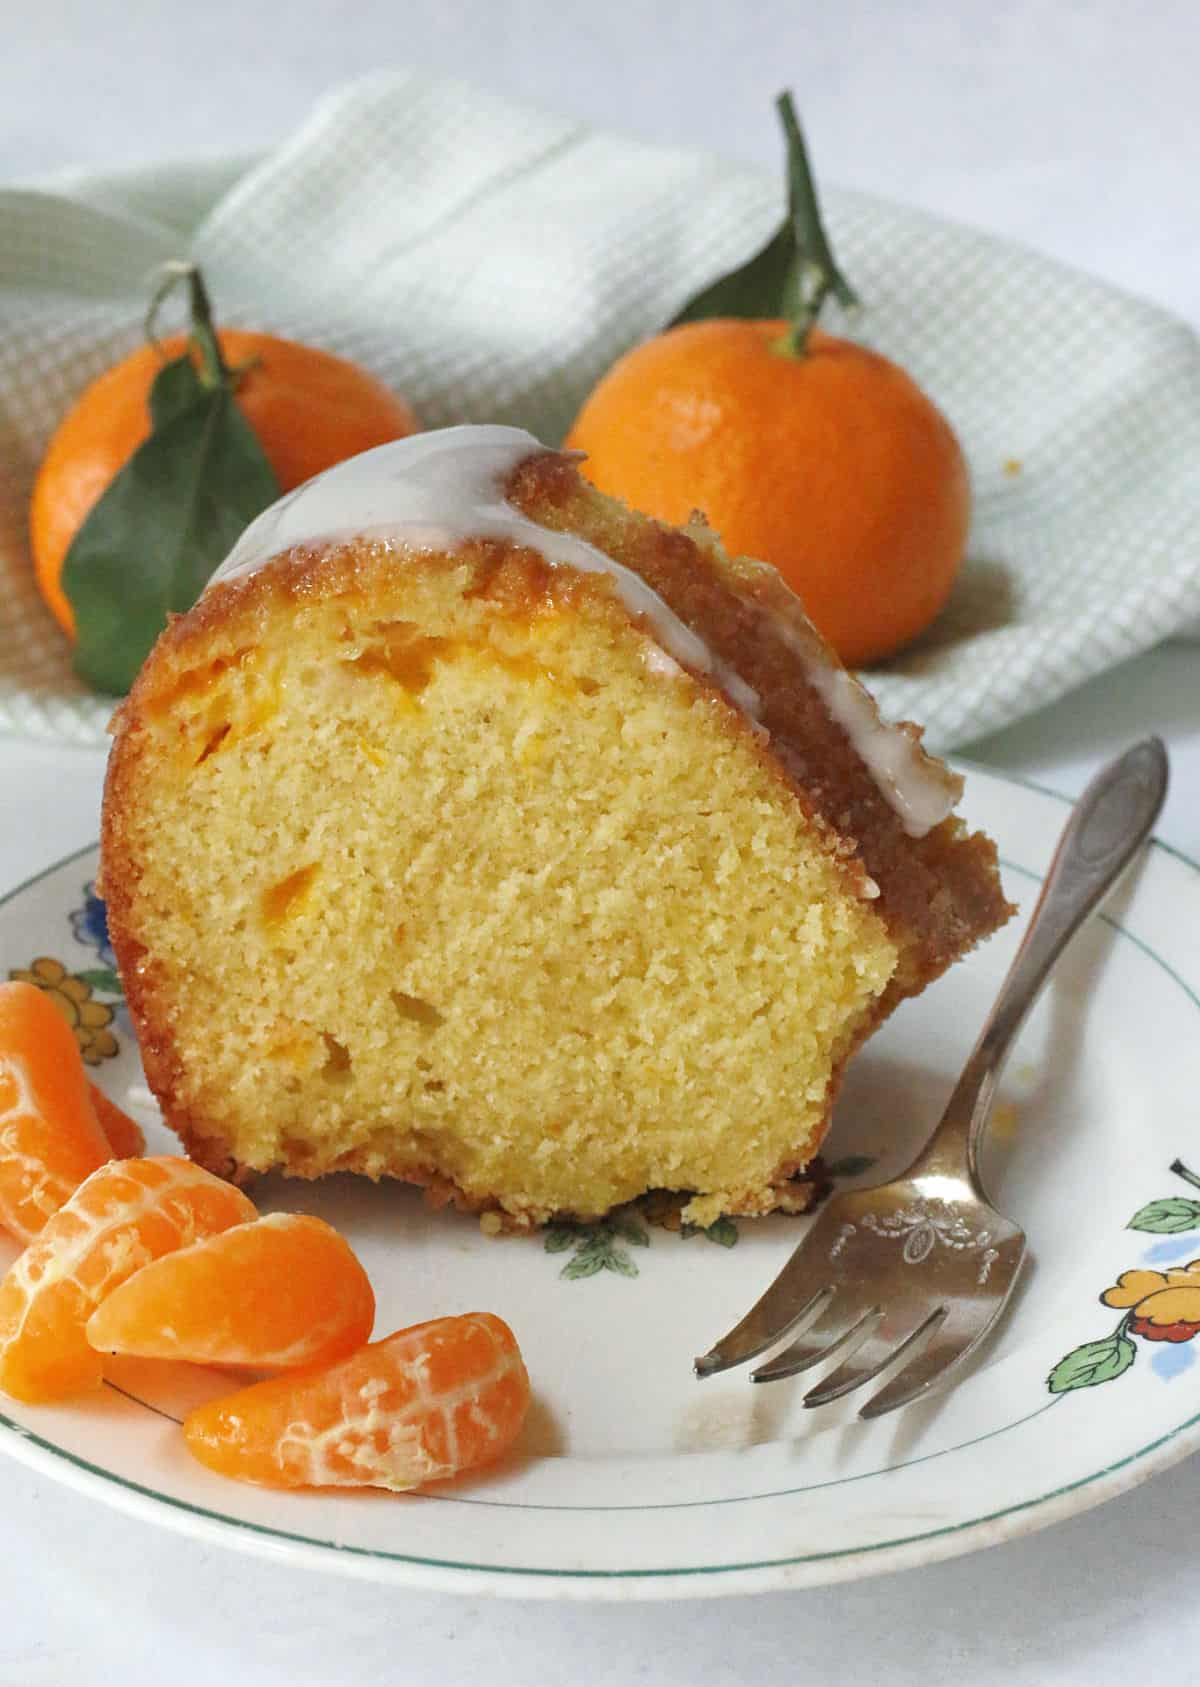 A slice of orange cake on a white plate with a fork and whole oranges.